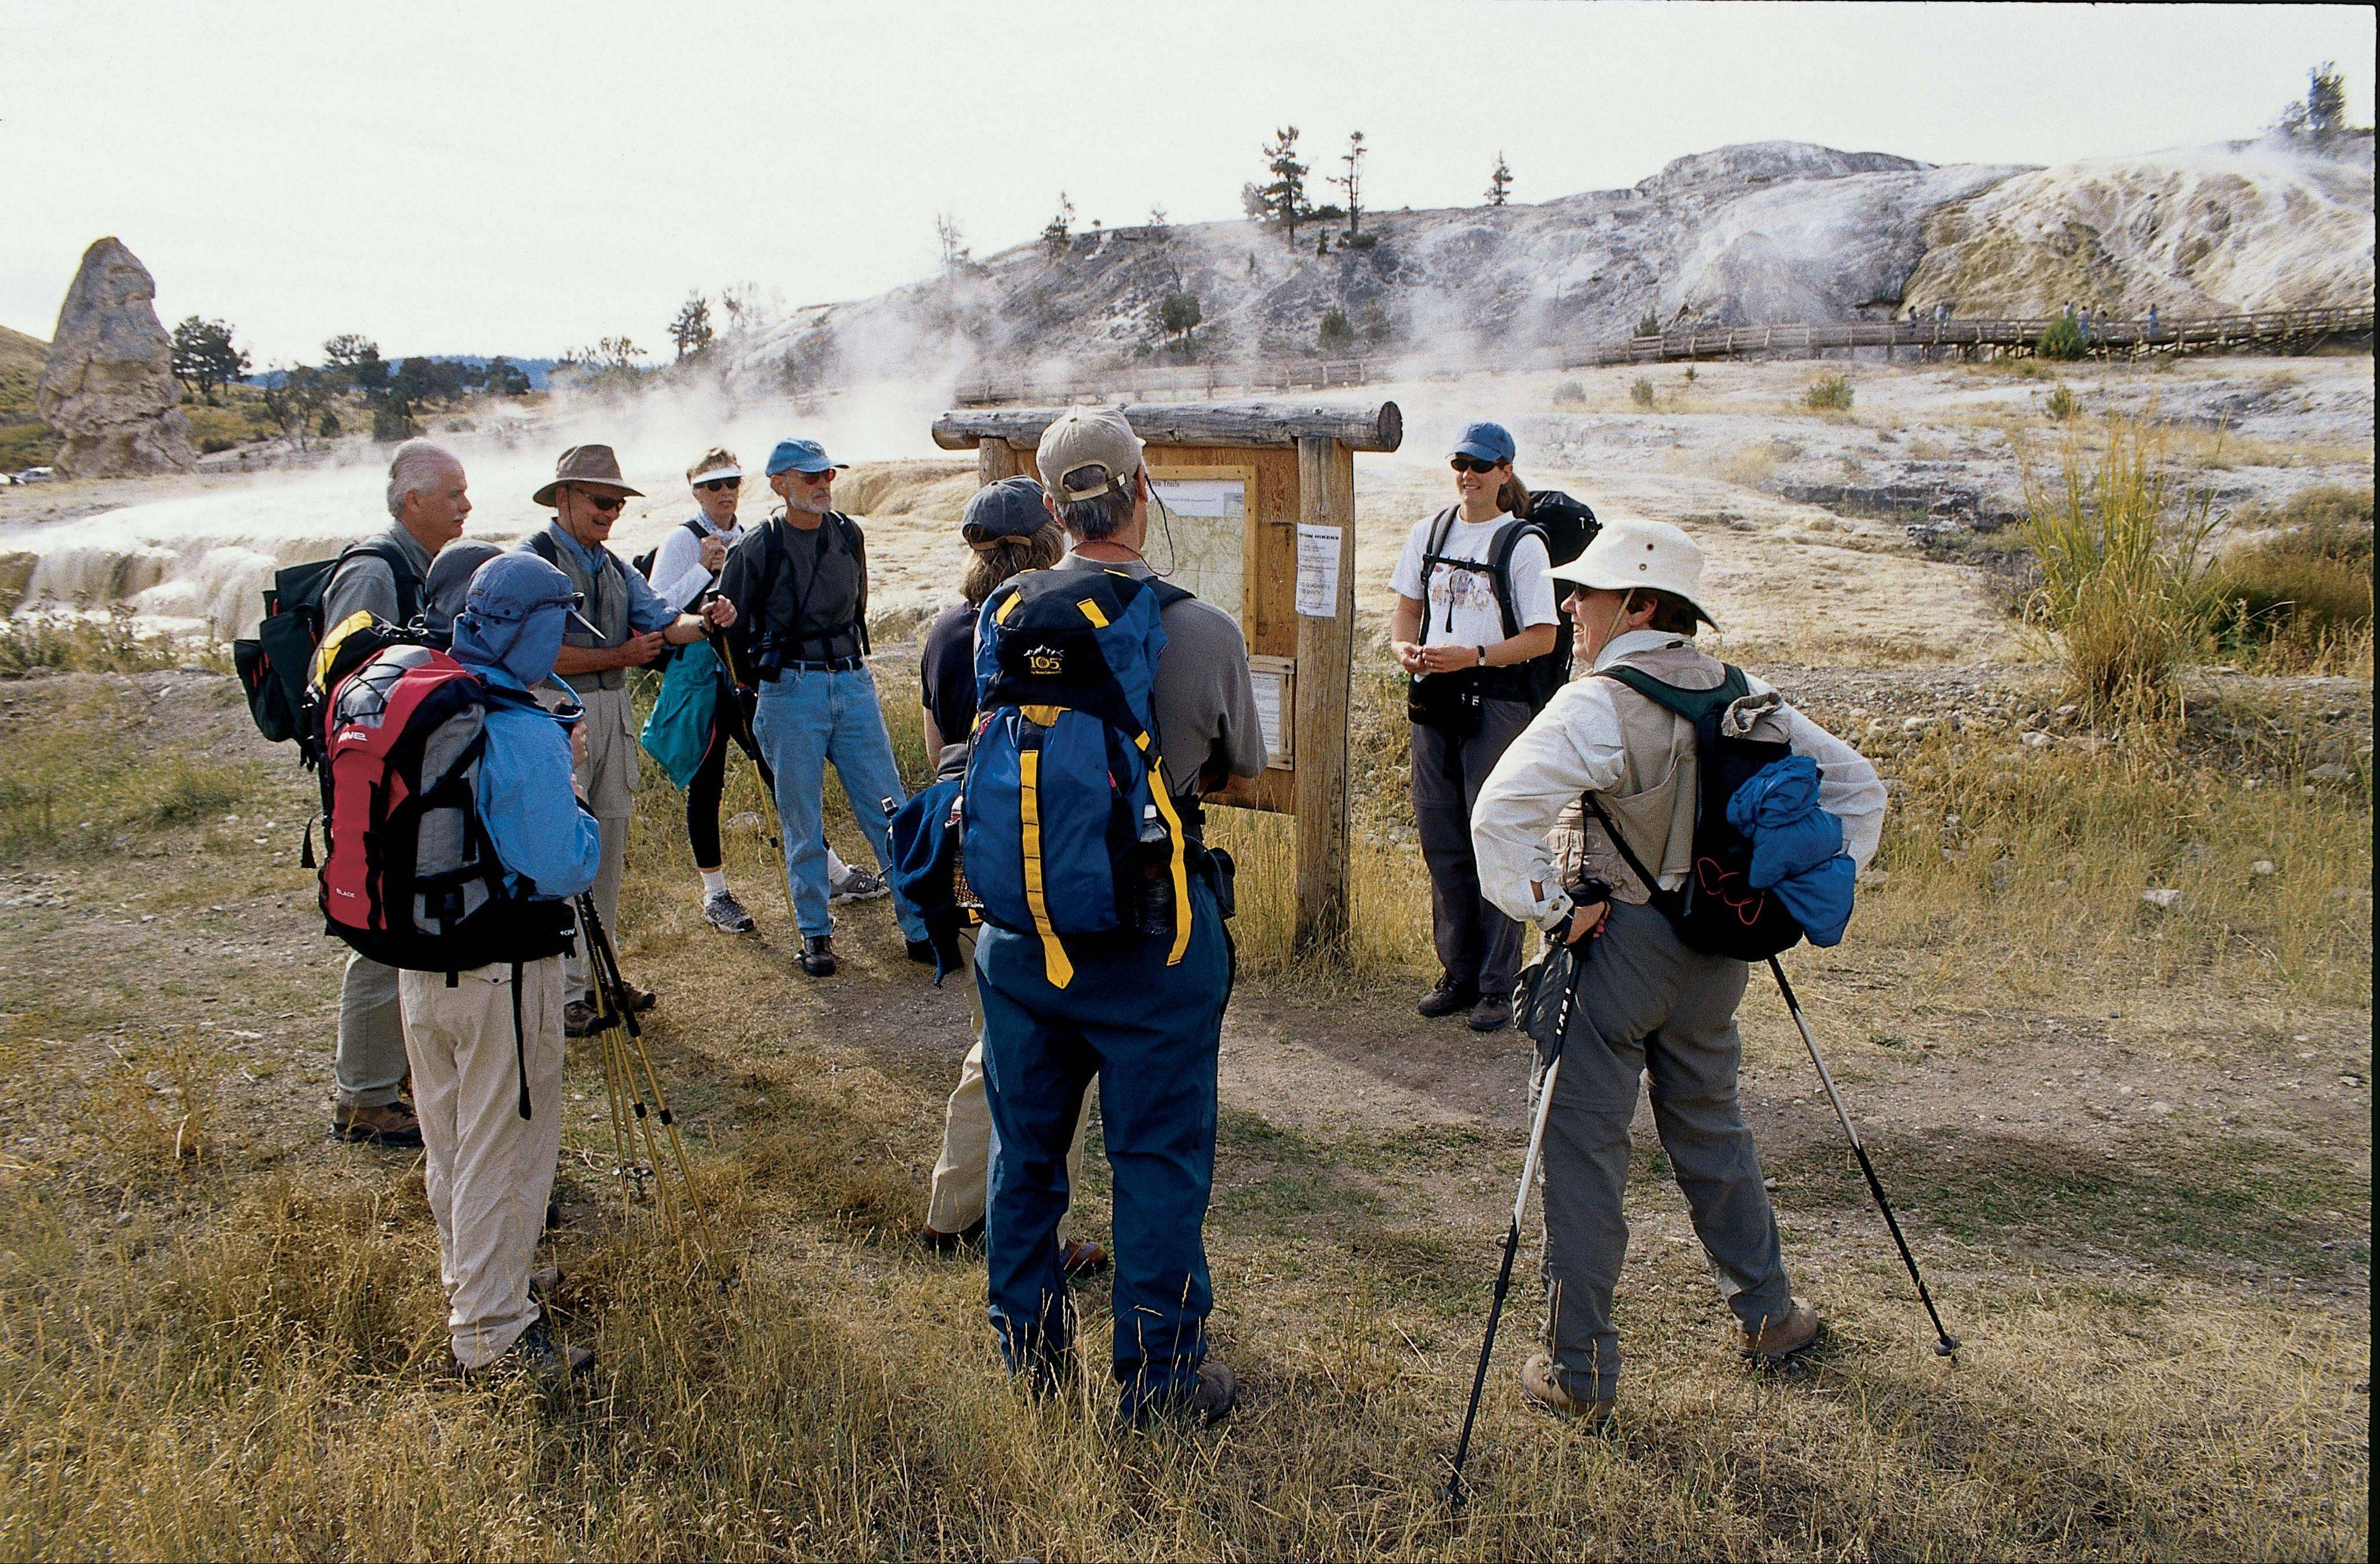 Roosevelt Rendezvous offers daytime field excursions followed by comfortable lodging in the historic Roosevelt Lodge in Yellowstone Park.